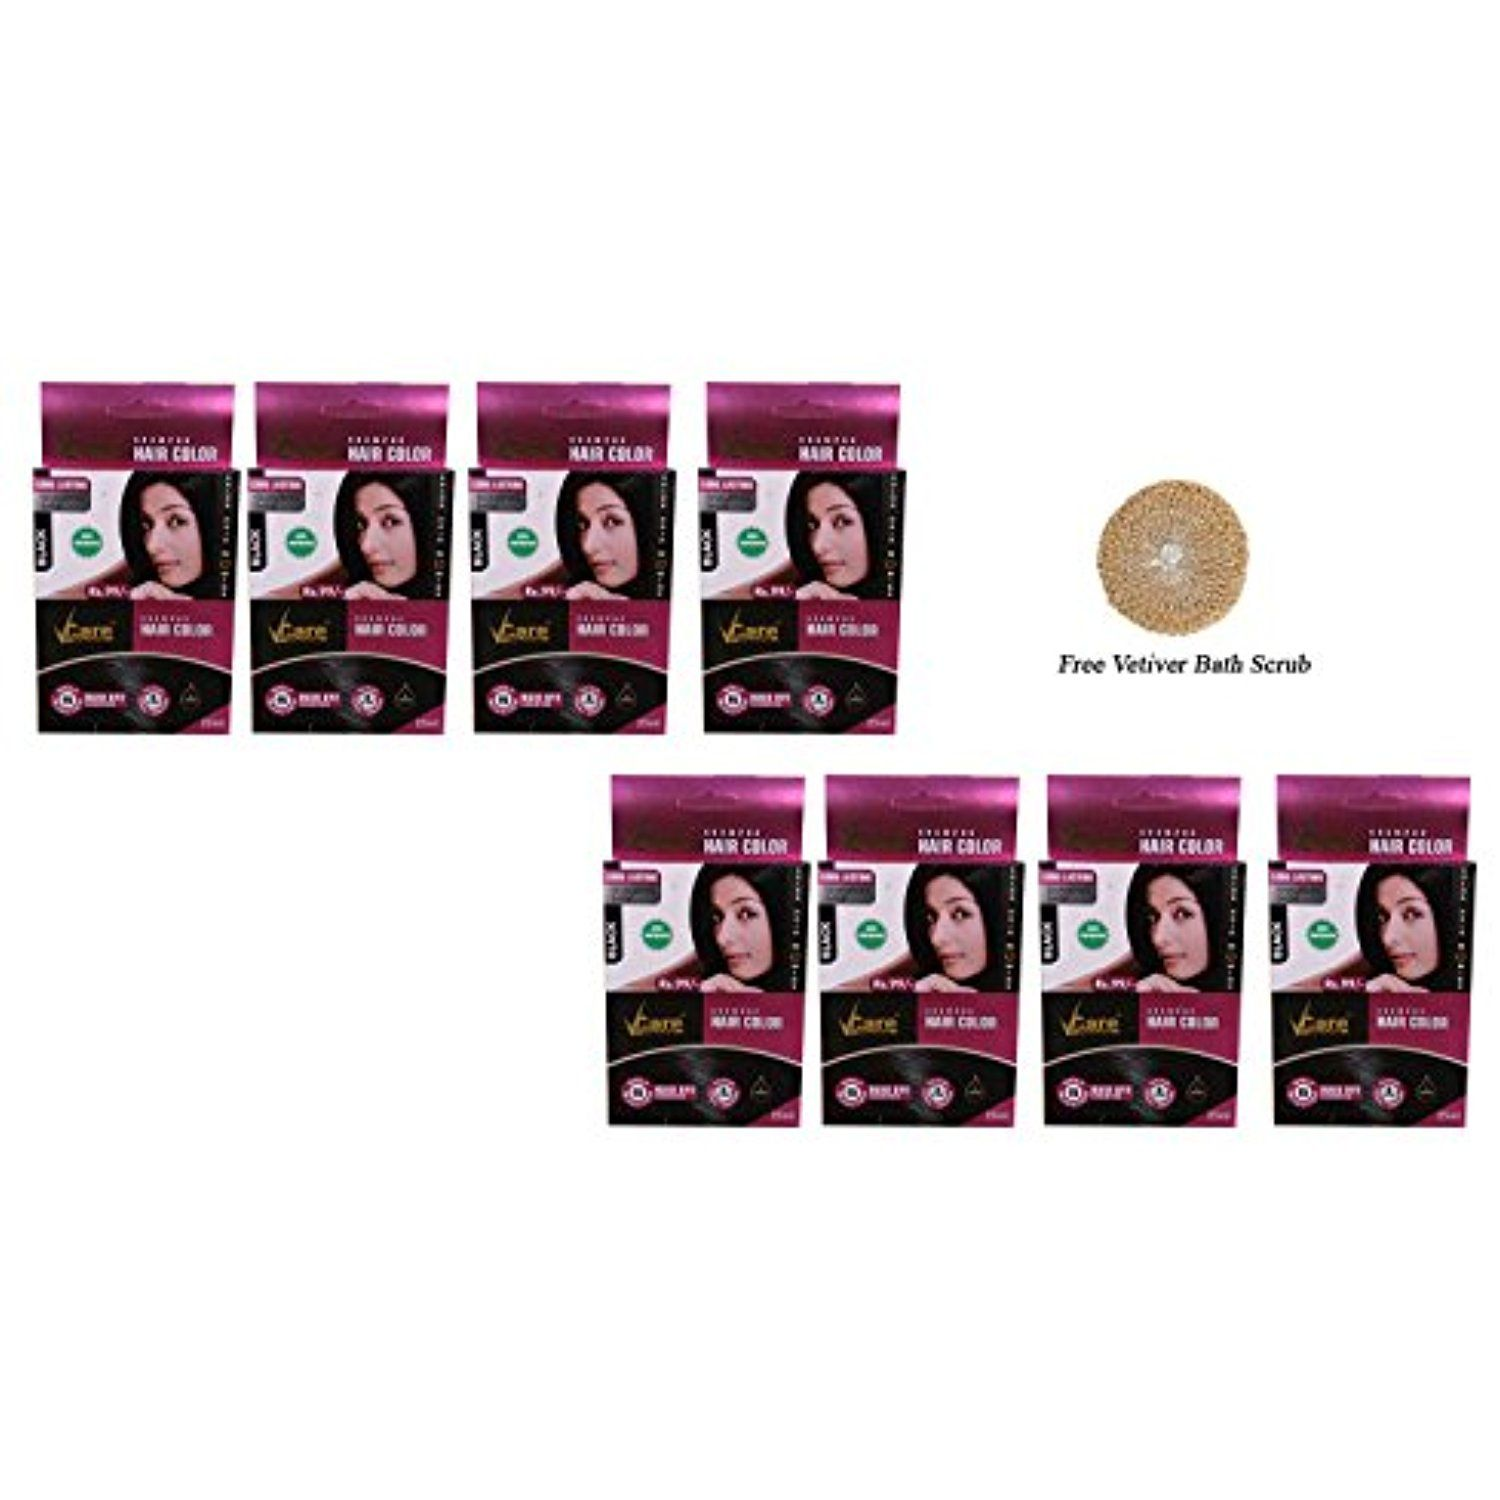 Pack of 8 Vcare Shampoo Hair Color Black 25ml Free